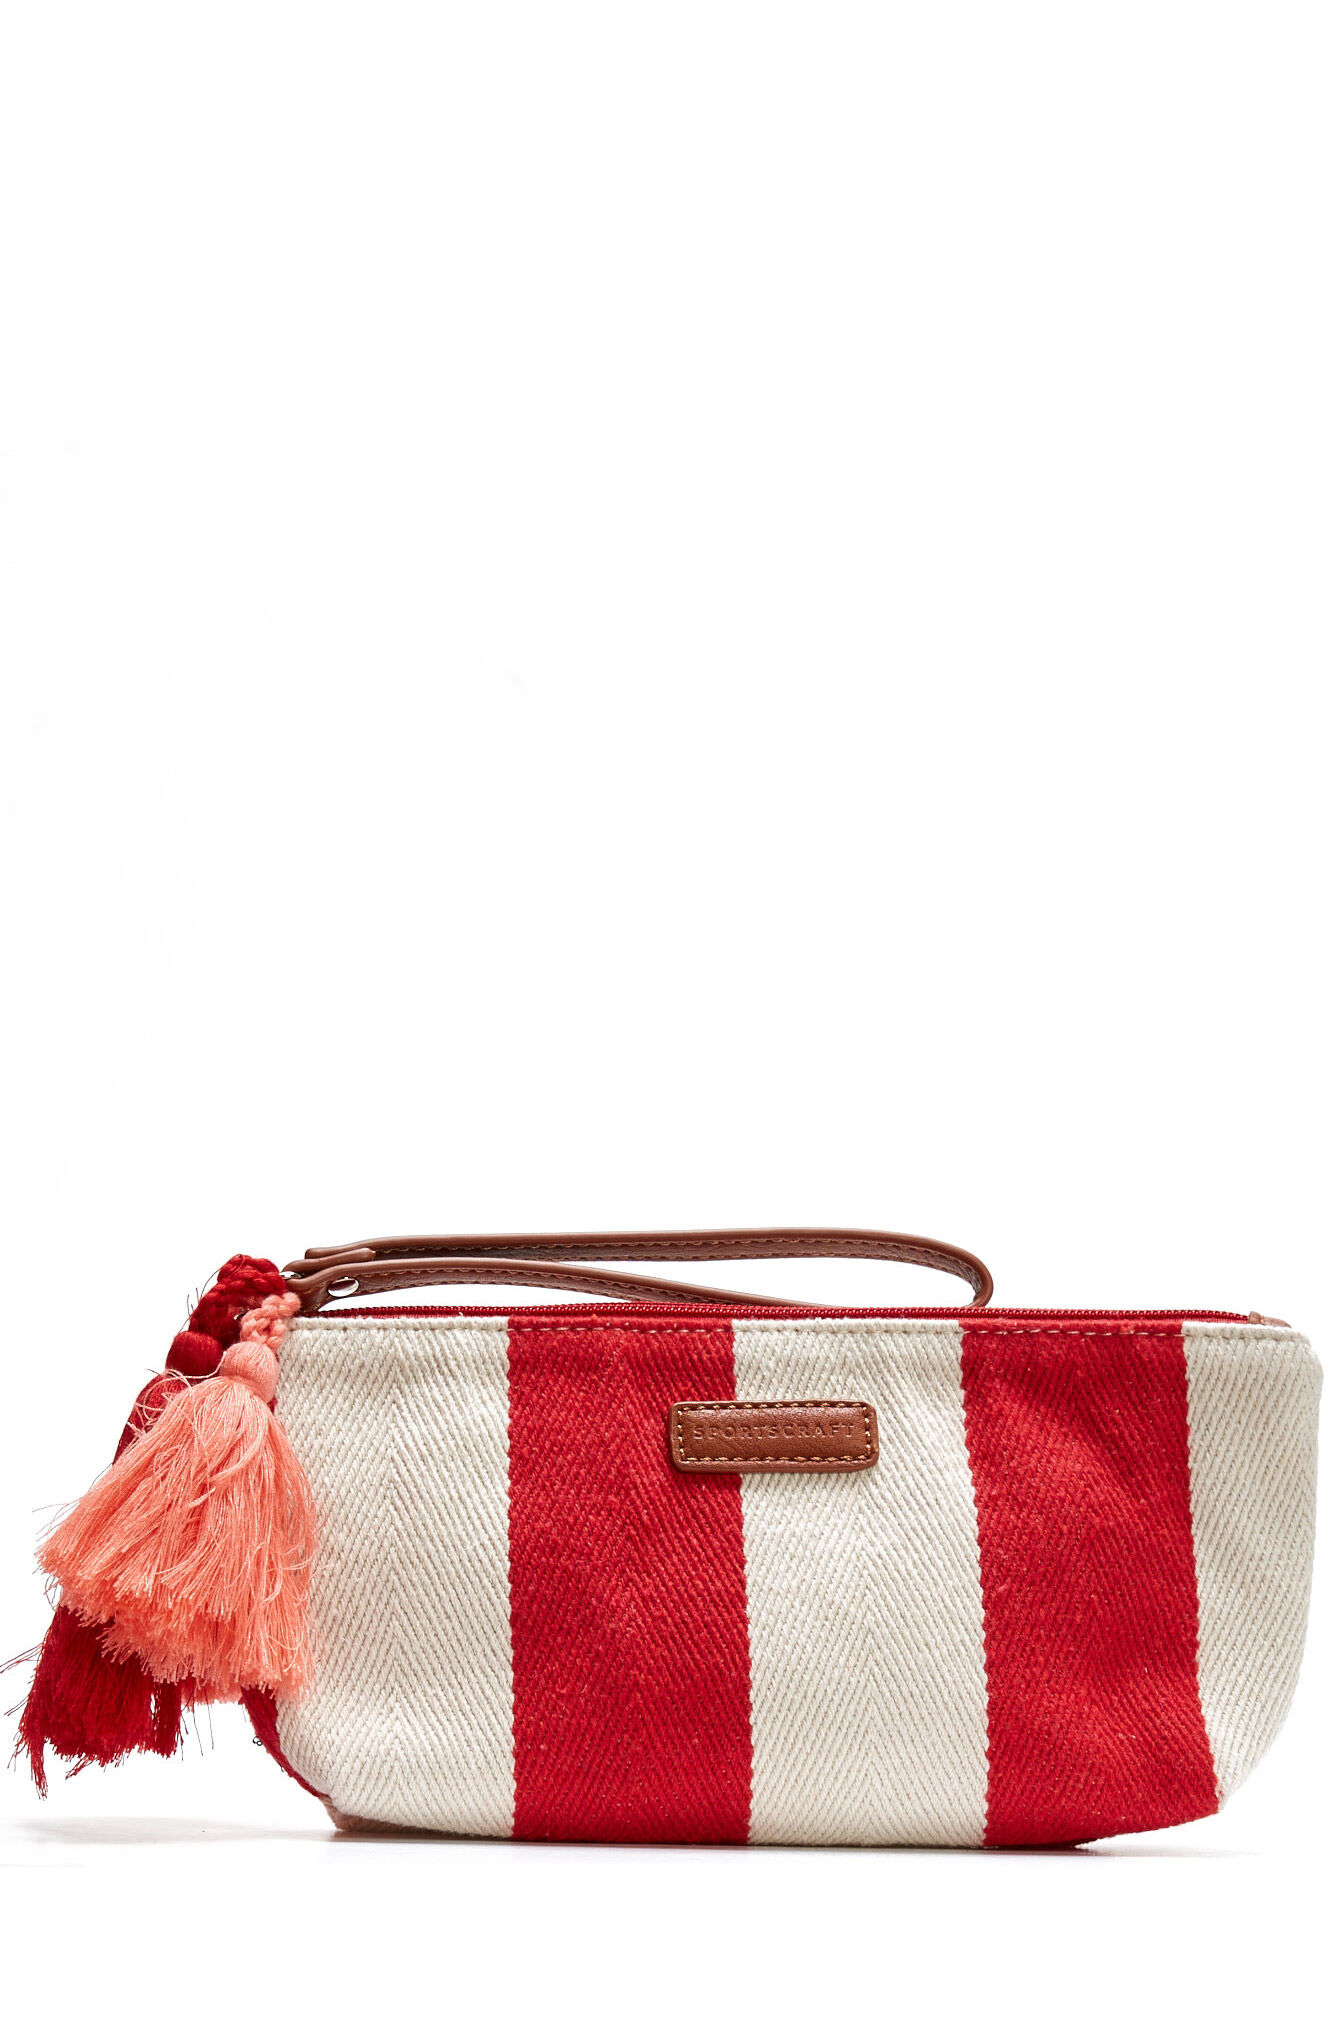 NEW-Sportscraft-WOMENS-Angie-Canvas-Pouch-Women-039-s-Bags